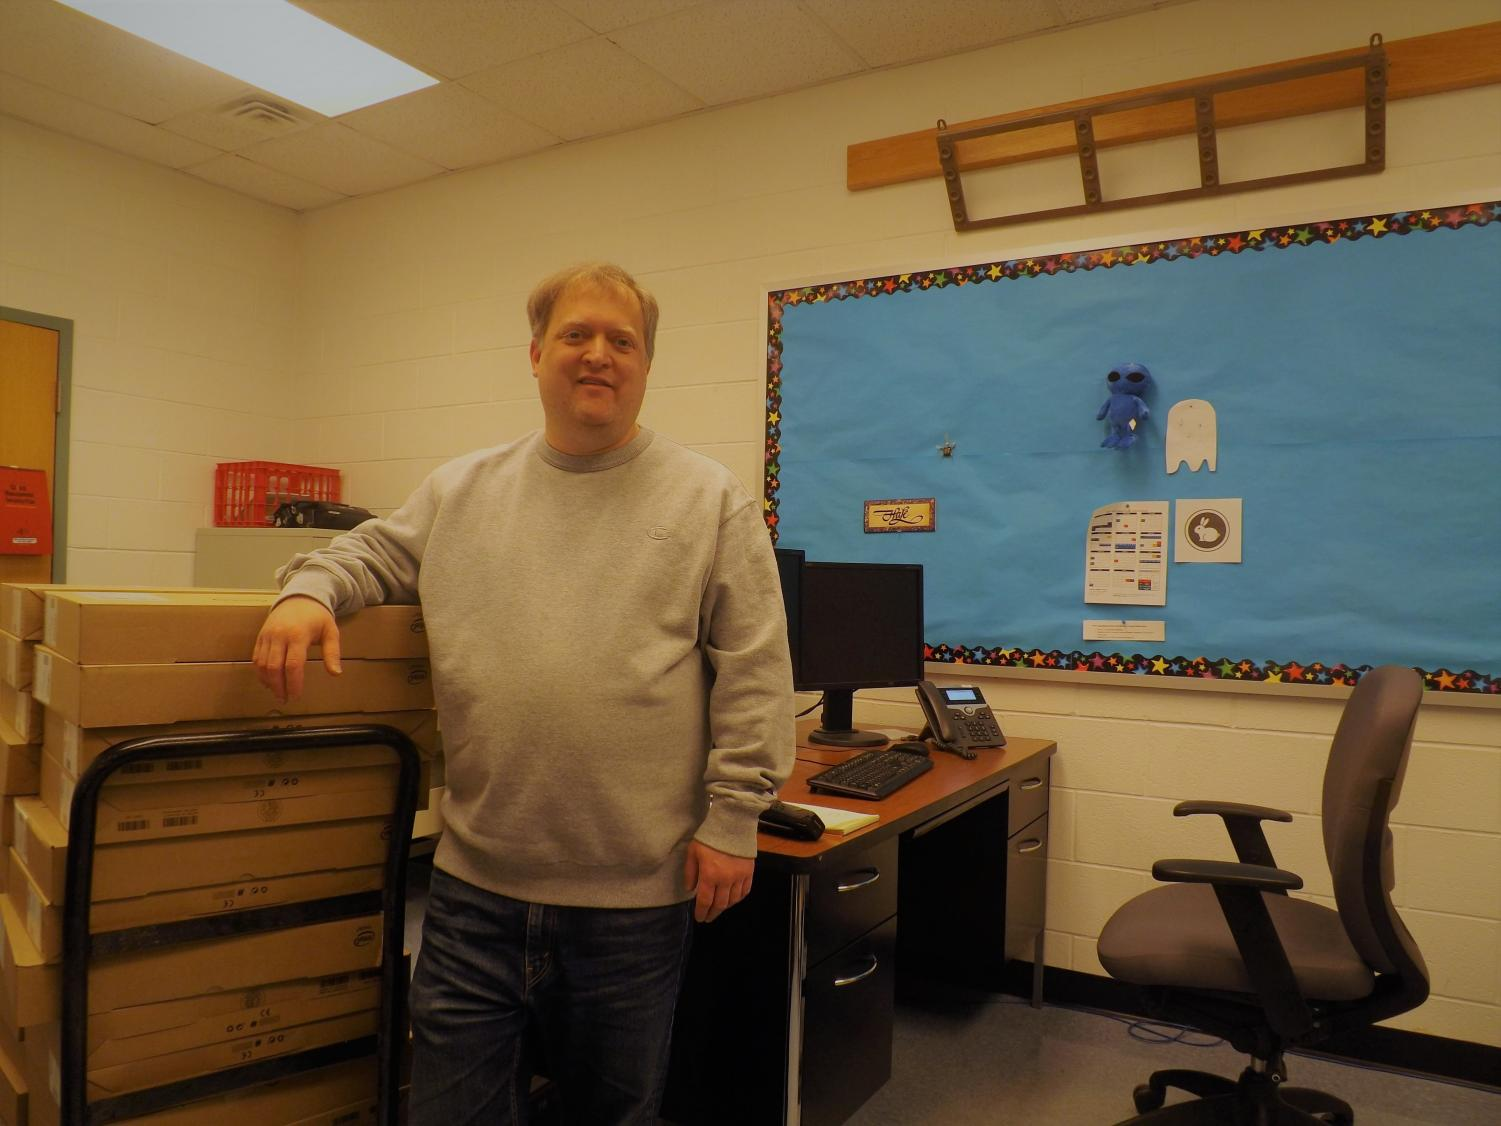 Mr.Hale with a new stack of computers for tech ed.